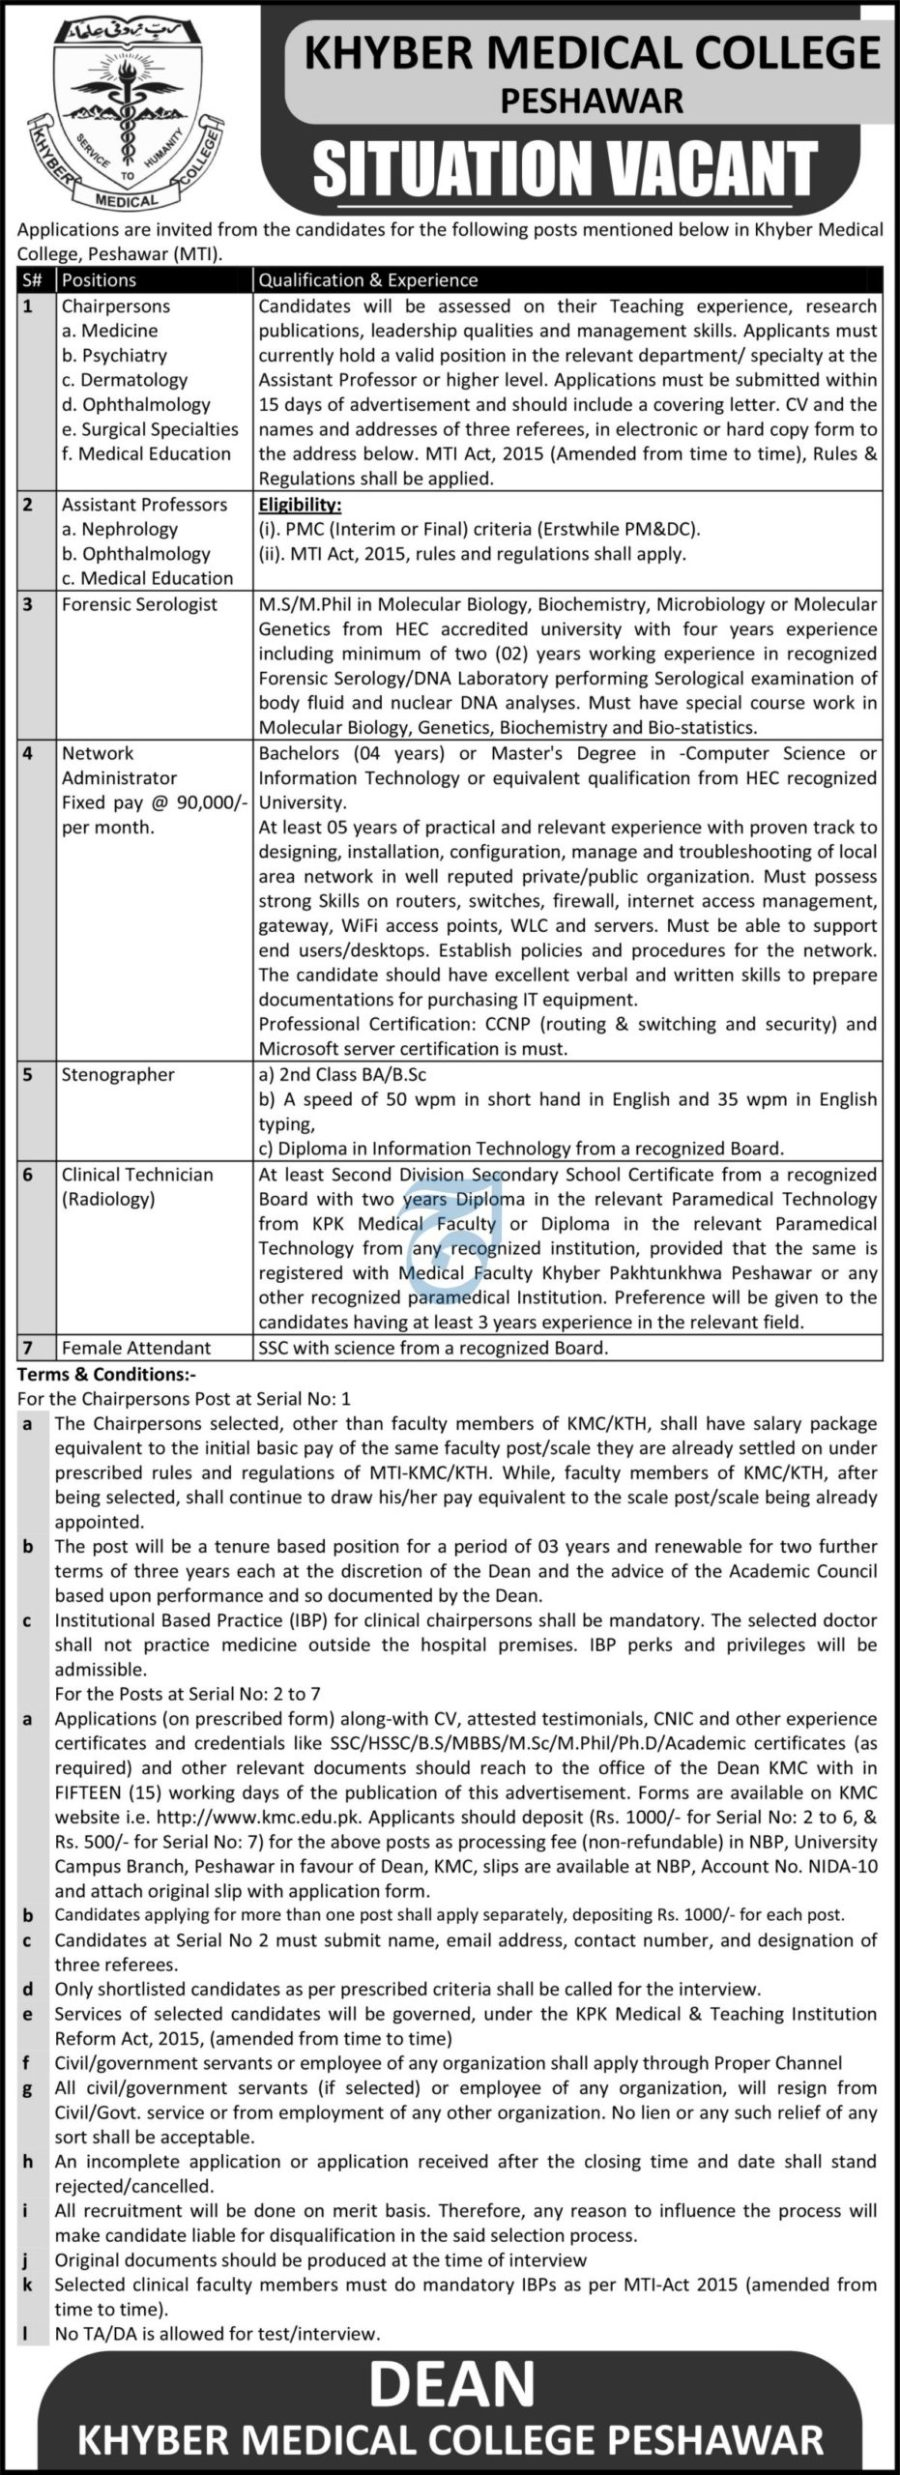 Khyber Medical College Peshawar May Jobs 2021 For Chair Persons,Assistant Professor,Network Administrator,Stenographer,Clinical Technician Apply Online